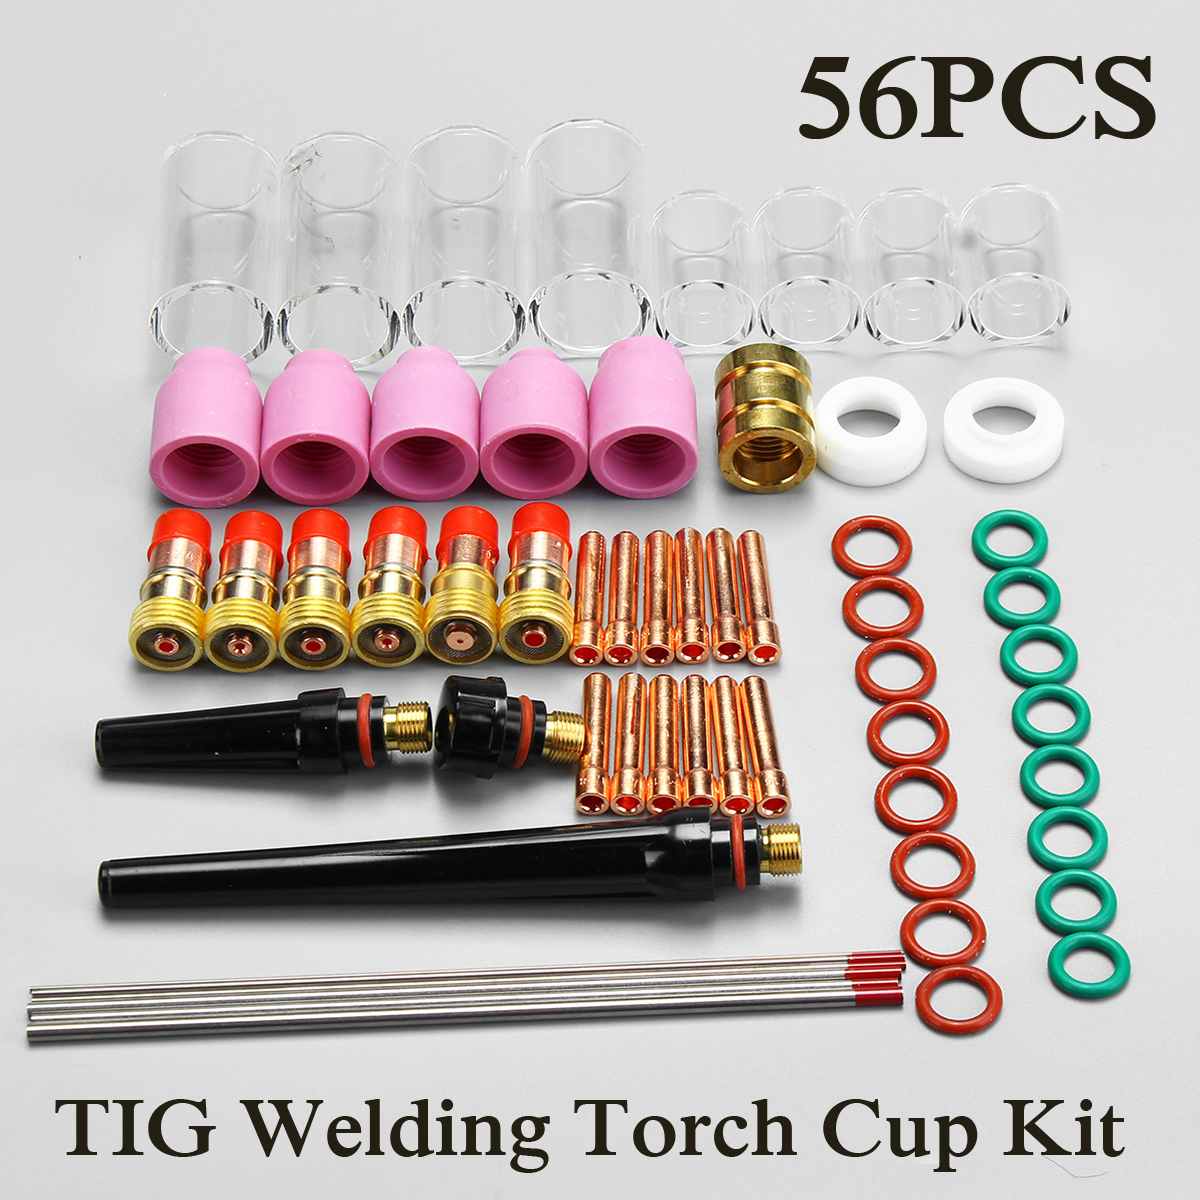 New 56Pcs TIG Welding Torch for Stubby Gas Lens Glass Pyrex Cup Collect Body Kit WP-17/18/26 Series Welding Tool Accessories